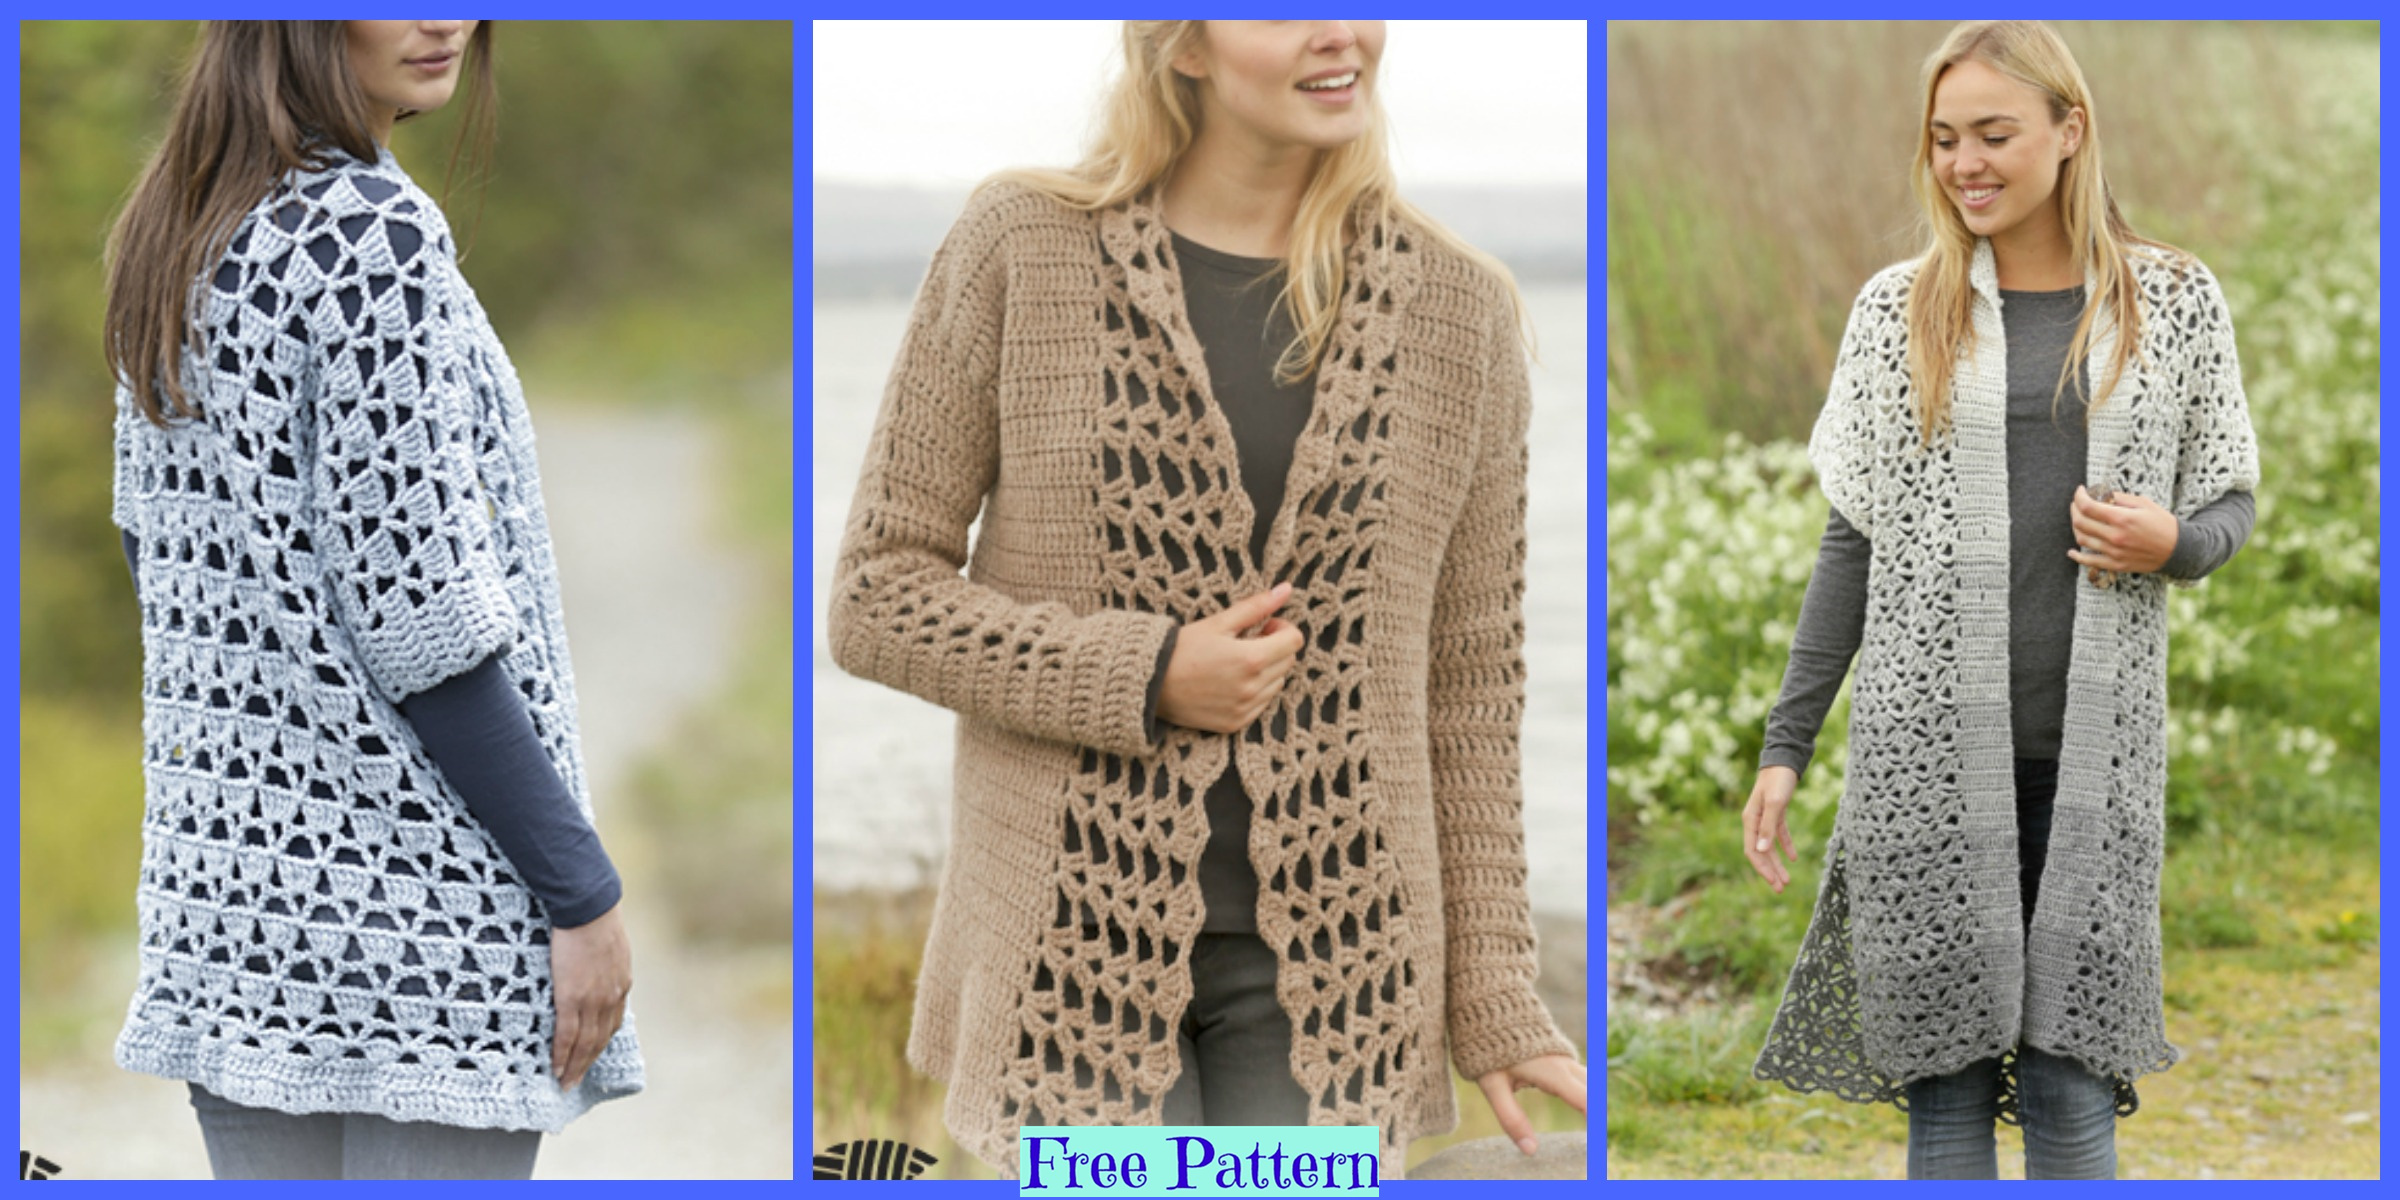 6 Unique Crochet Jacket – Free Patterns